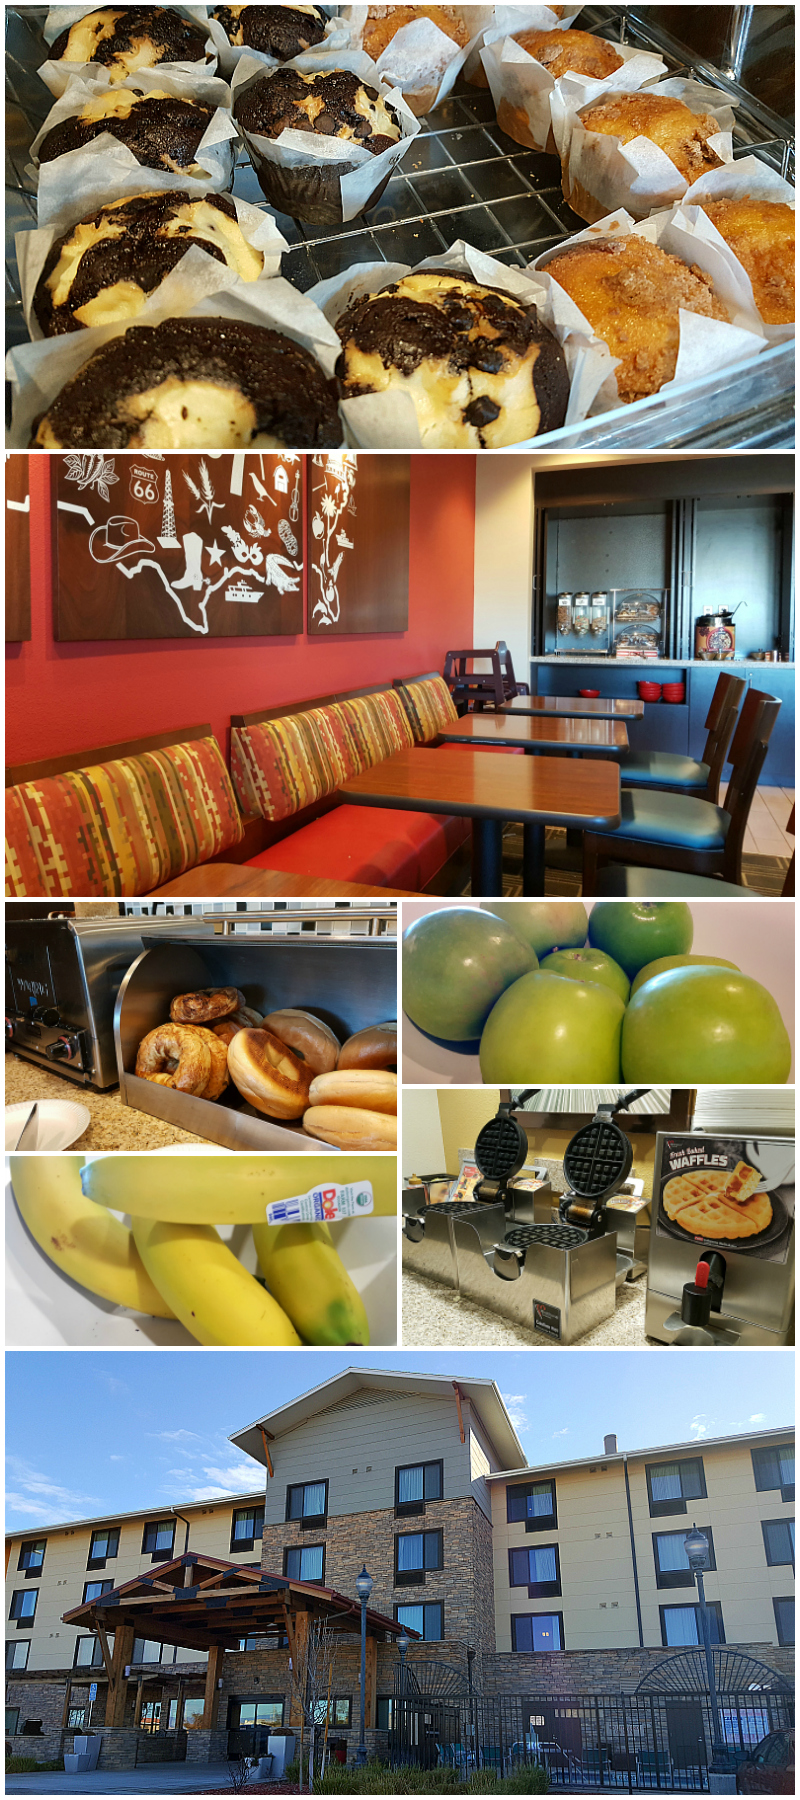 Breakfast at Marriott TownPlace Suites Lancaster, California